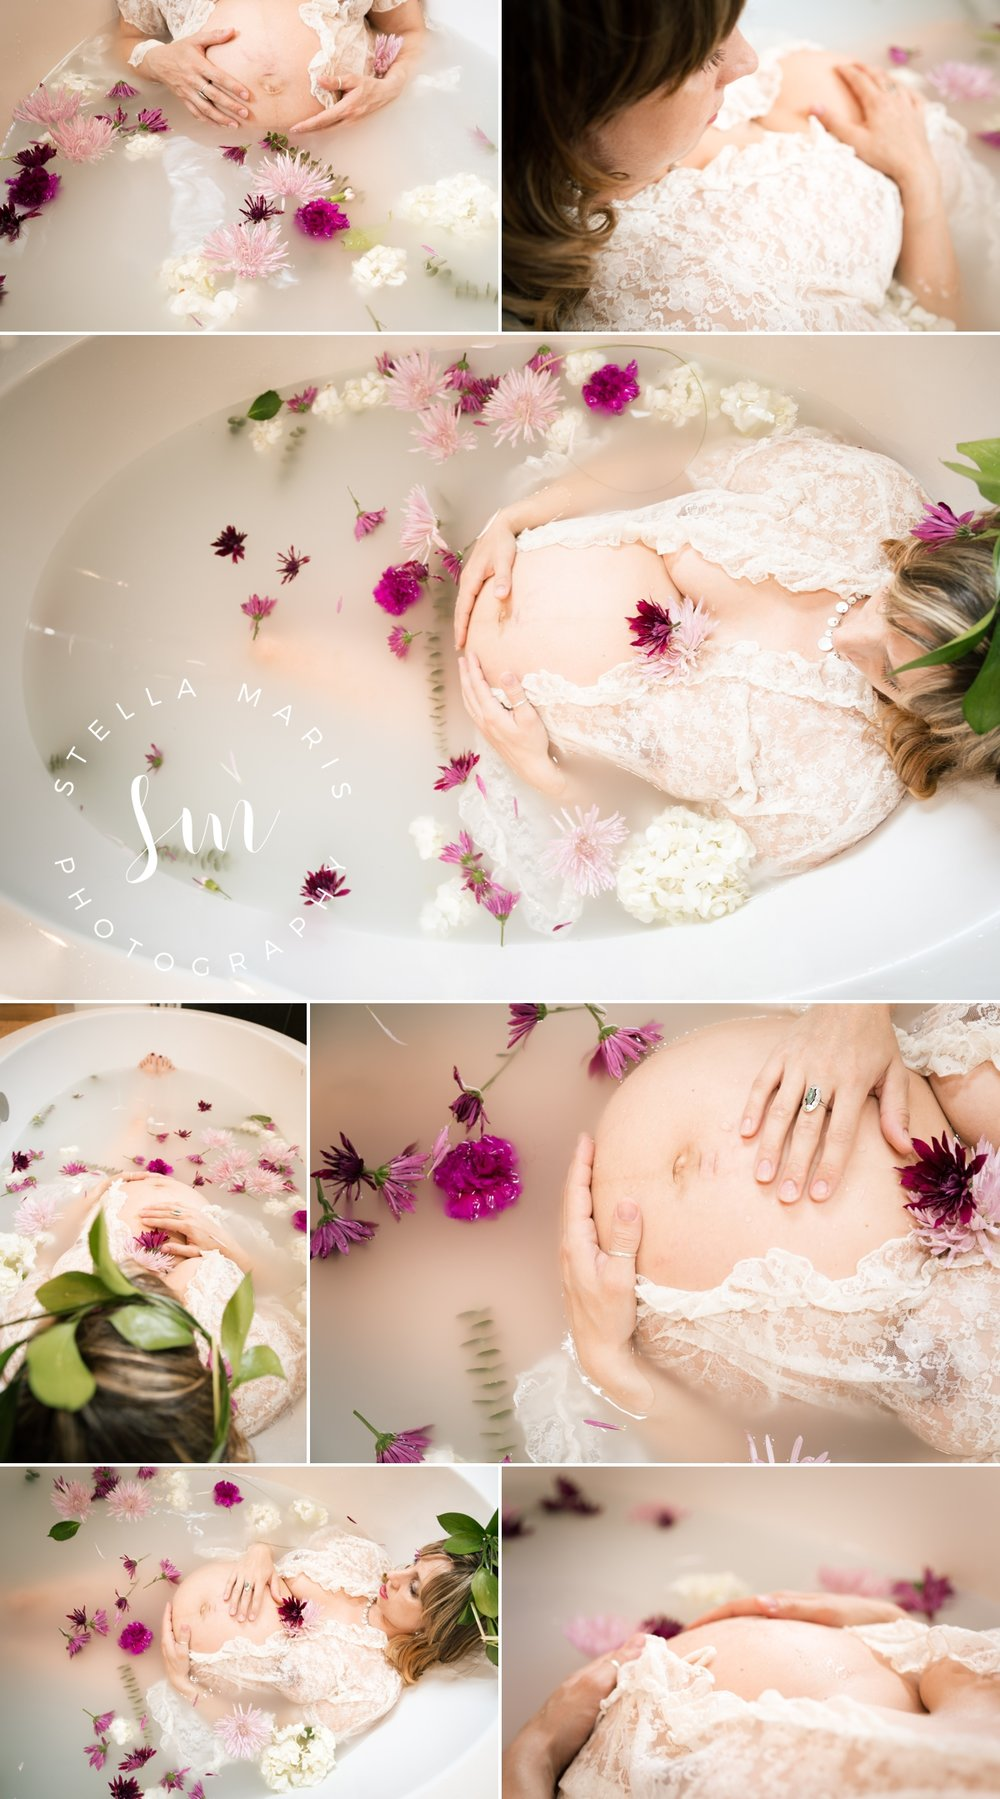 Dundee Oregon Milk Bath Session - Maternity